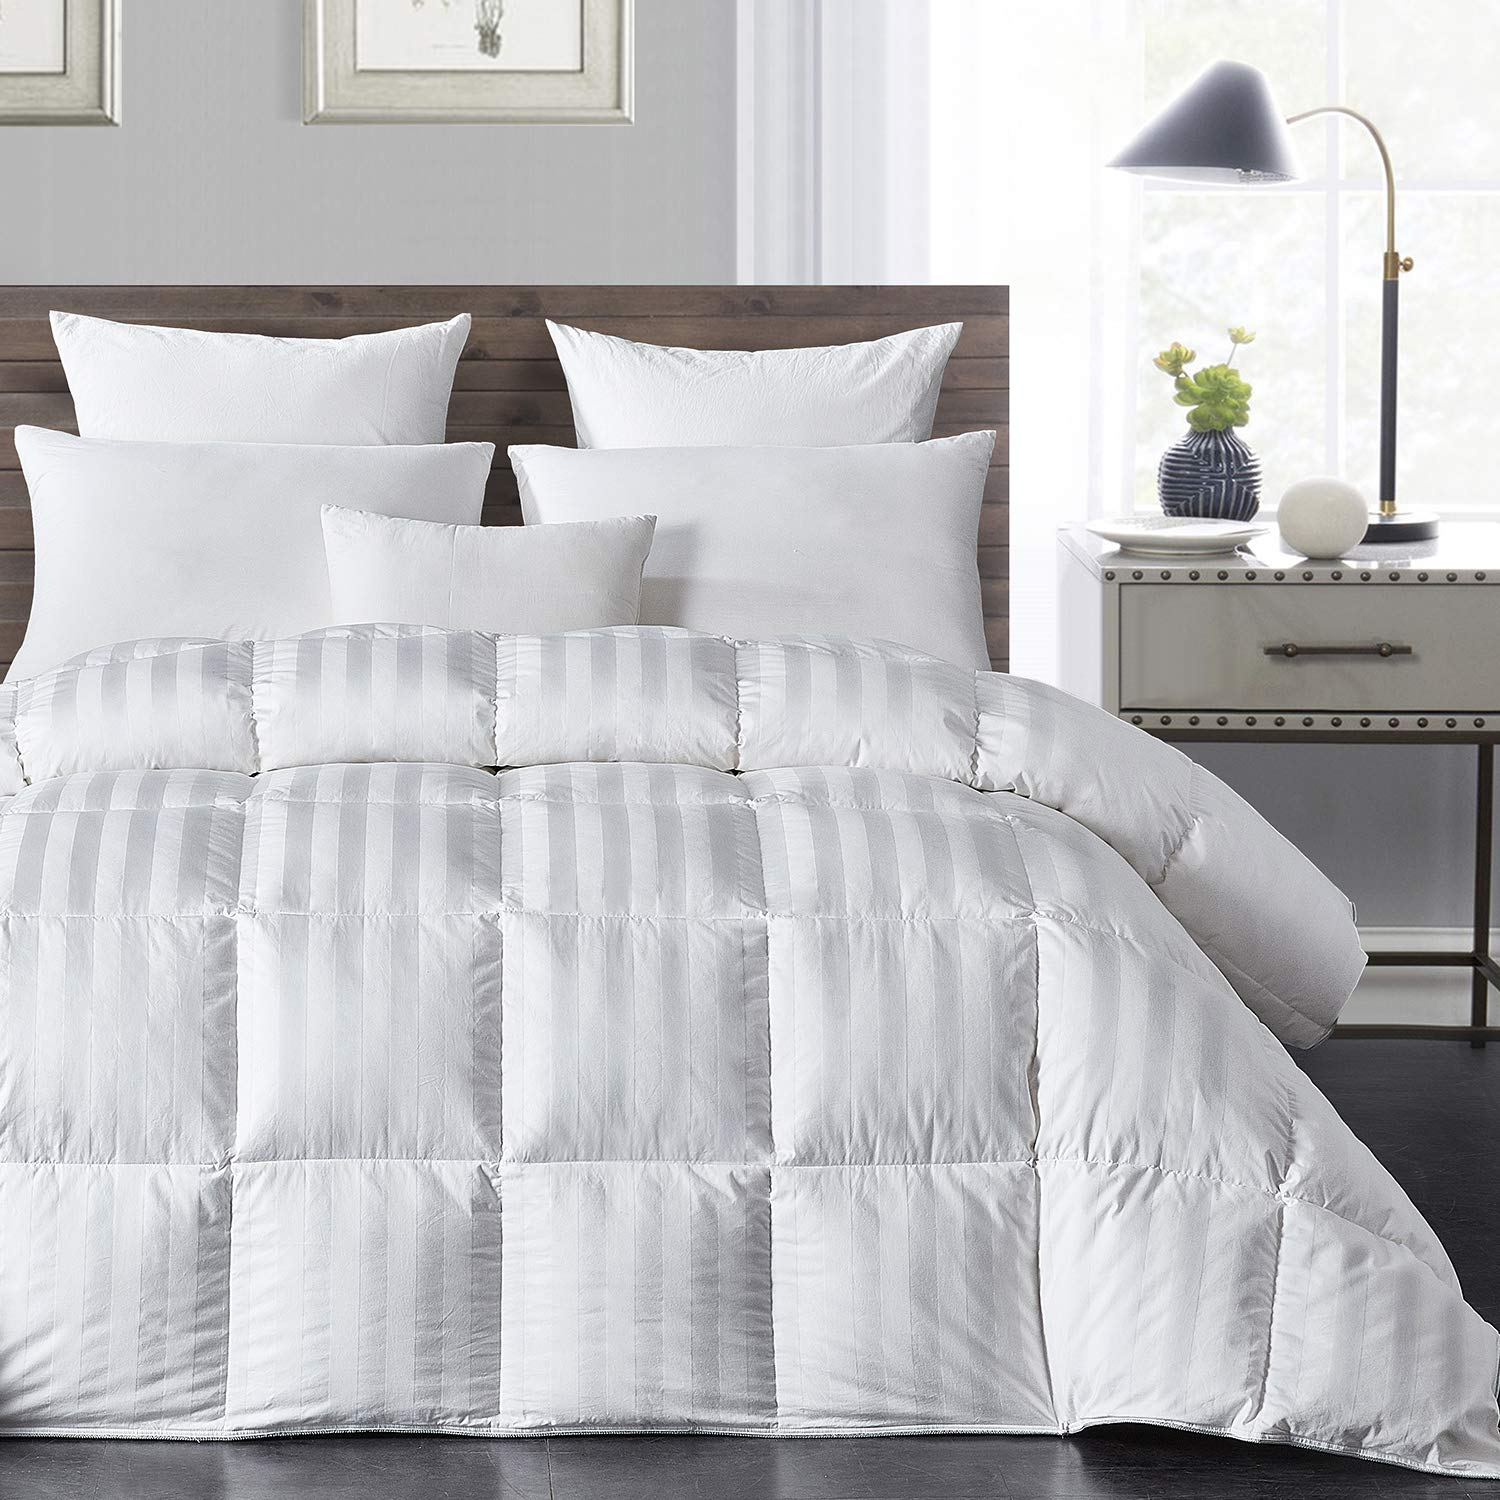 HOMBYS Luxurious Natural White Down Comforter King Size Feather All Season Duvet Insert White Classic Stripe Hypo-allergenic 100% Cotton Cover Droof with Corner Tabs(King,White Stripe)